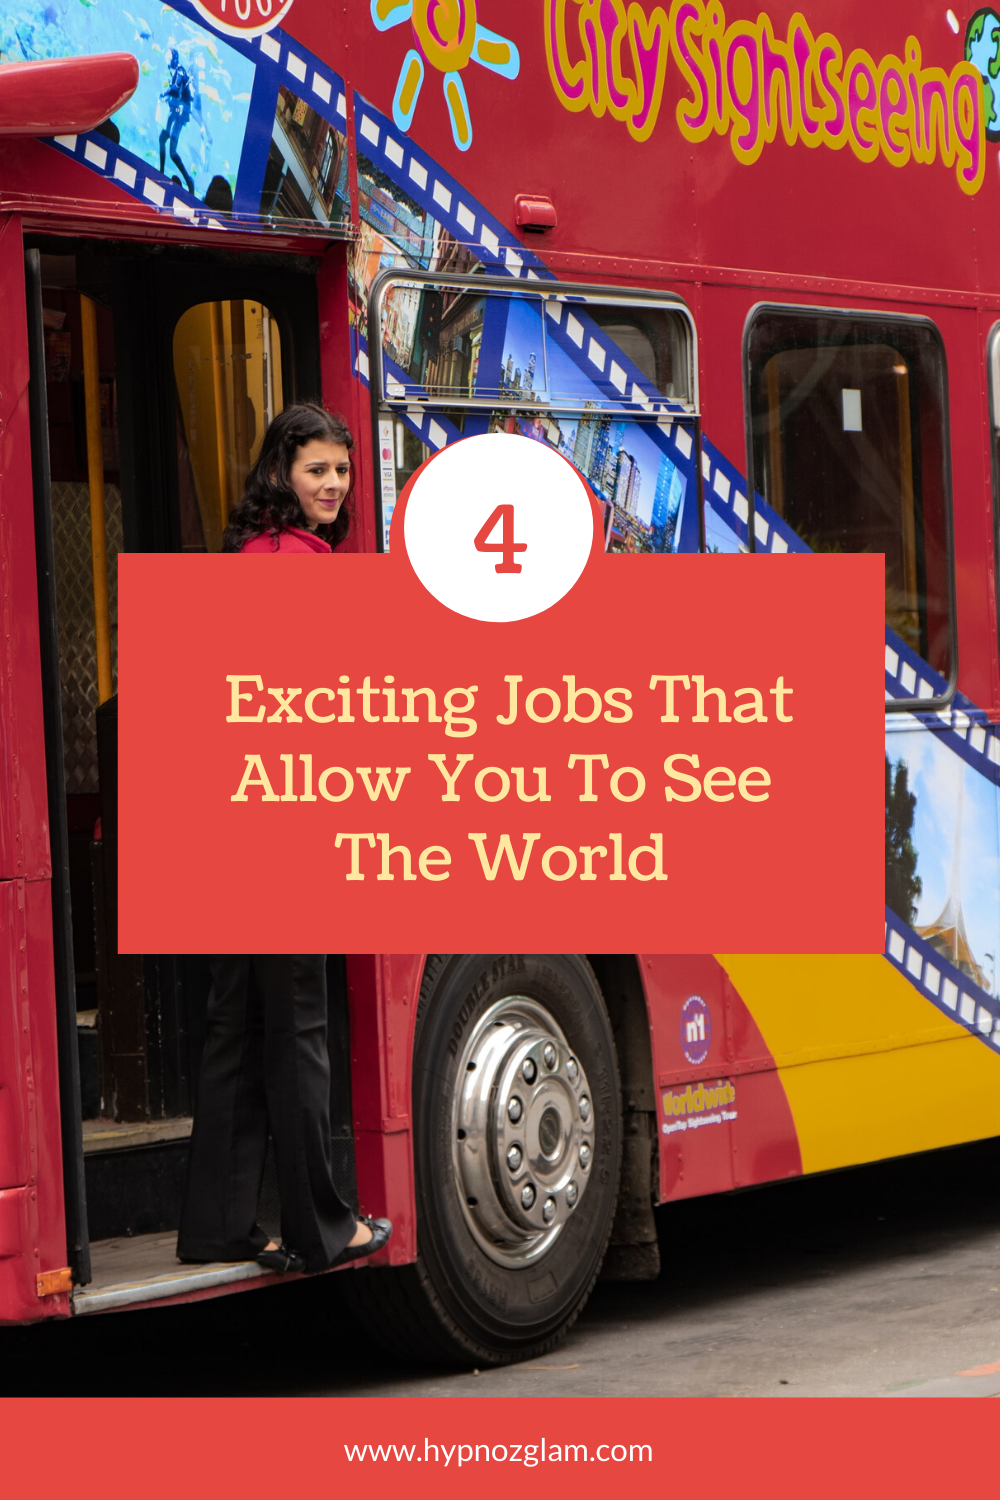 4 Exciting Jobs That Allow You To See The World